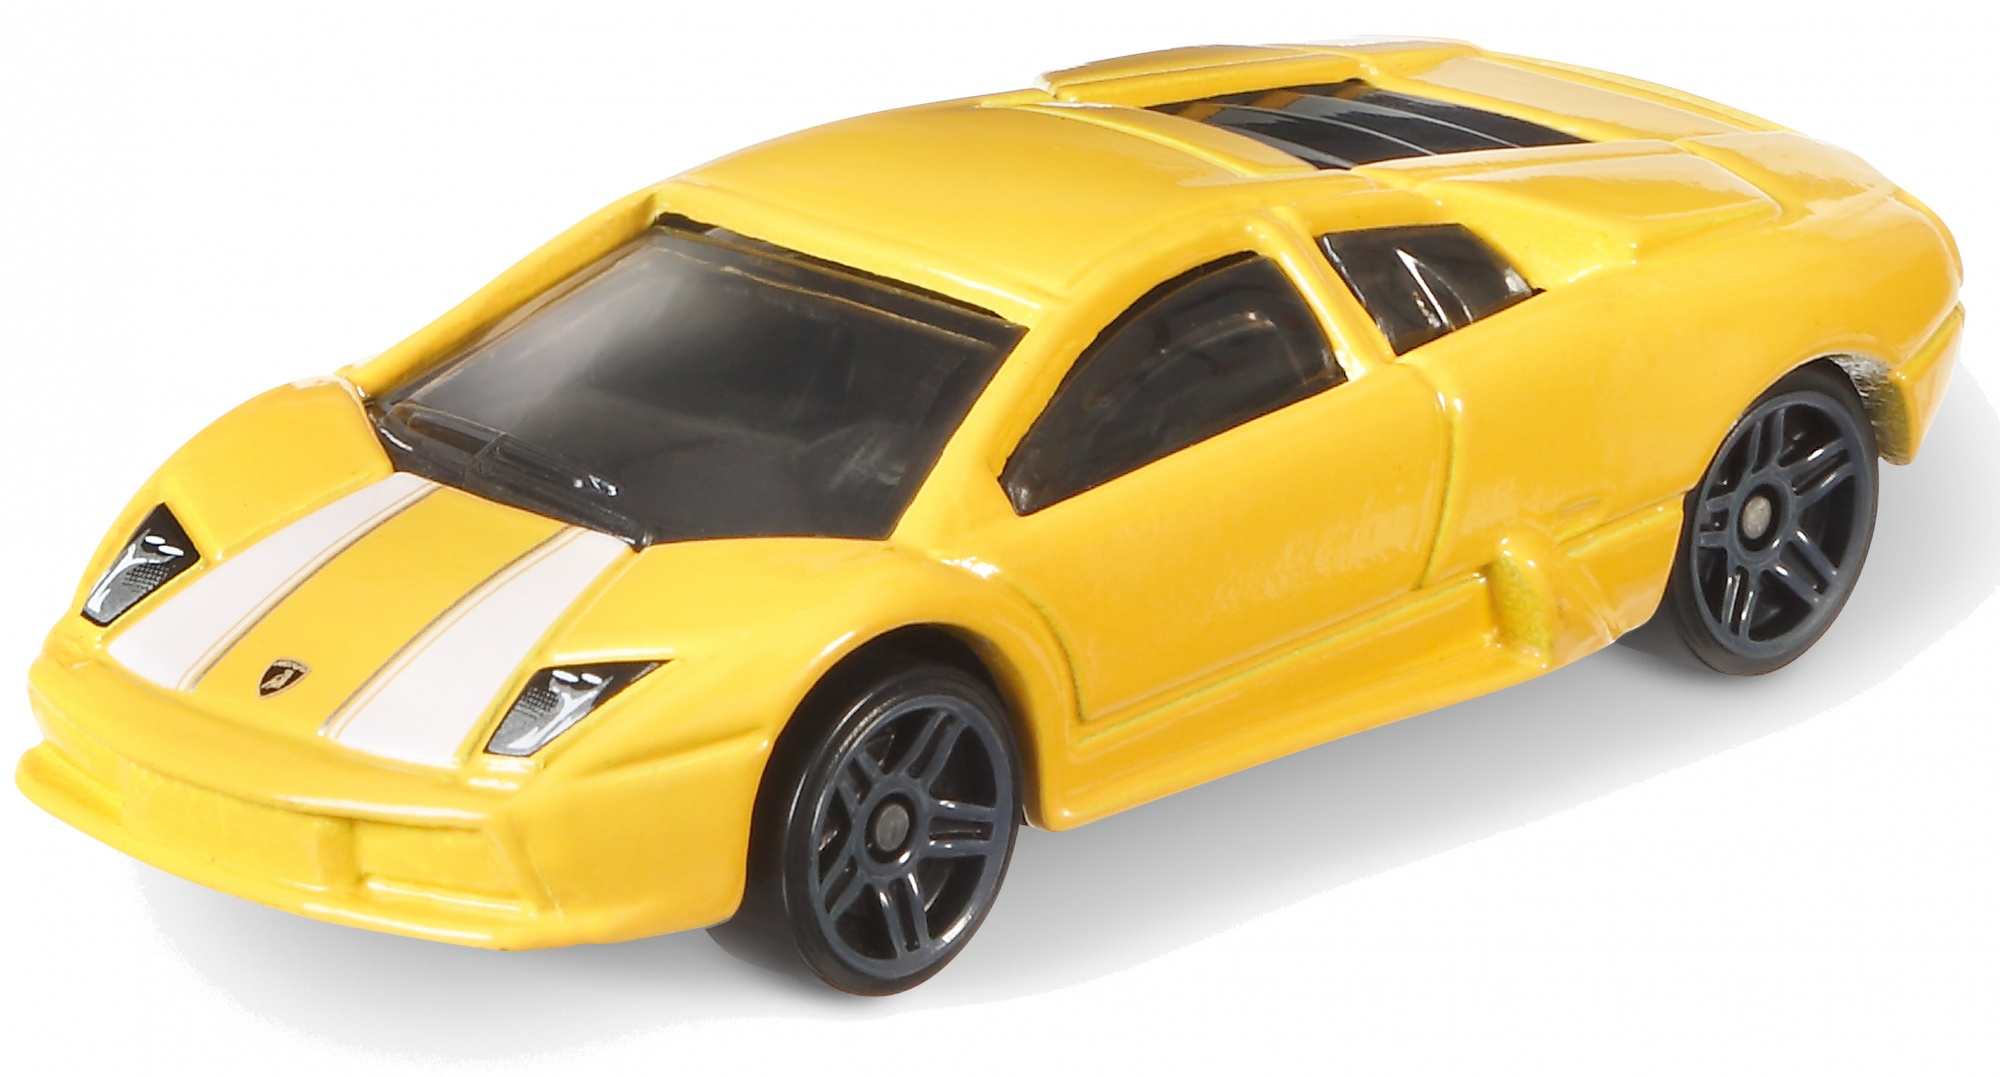 Hot Wheels Sports Car Lamborghini Murcielago Yellow 7 Cm Internet Toys